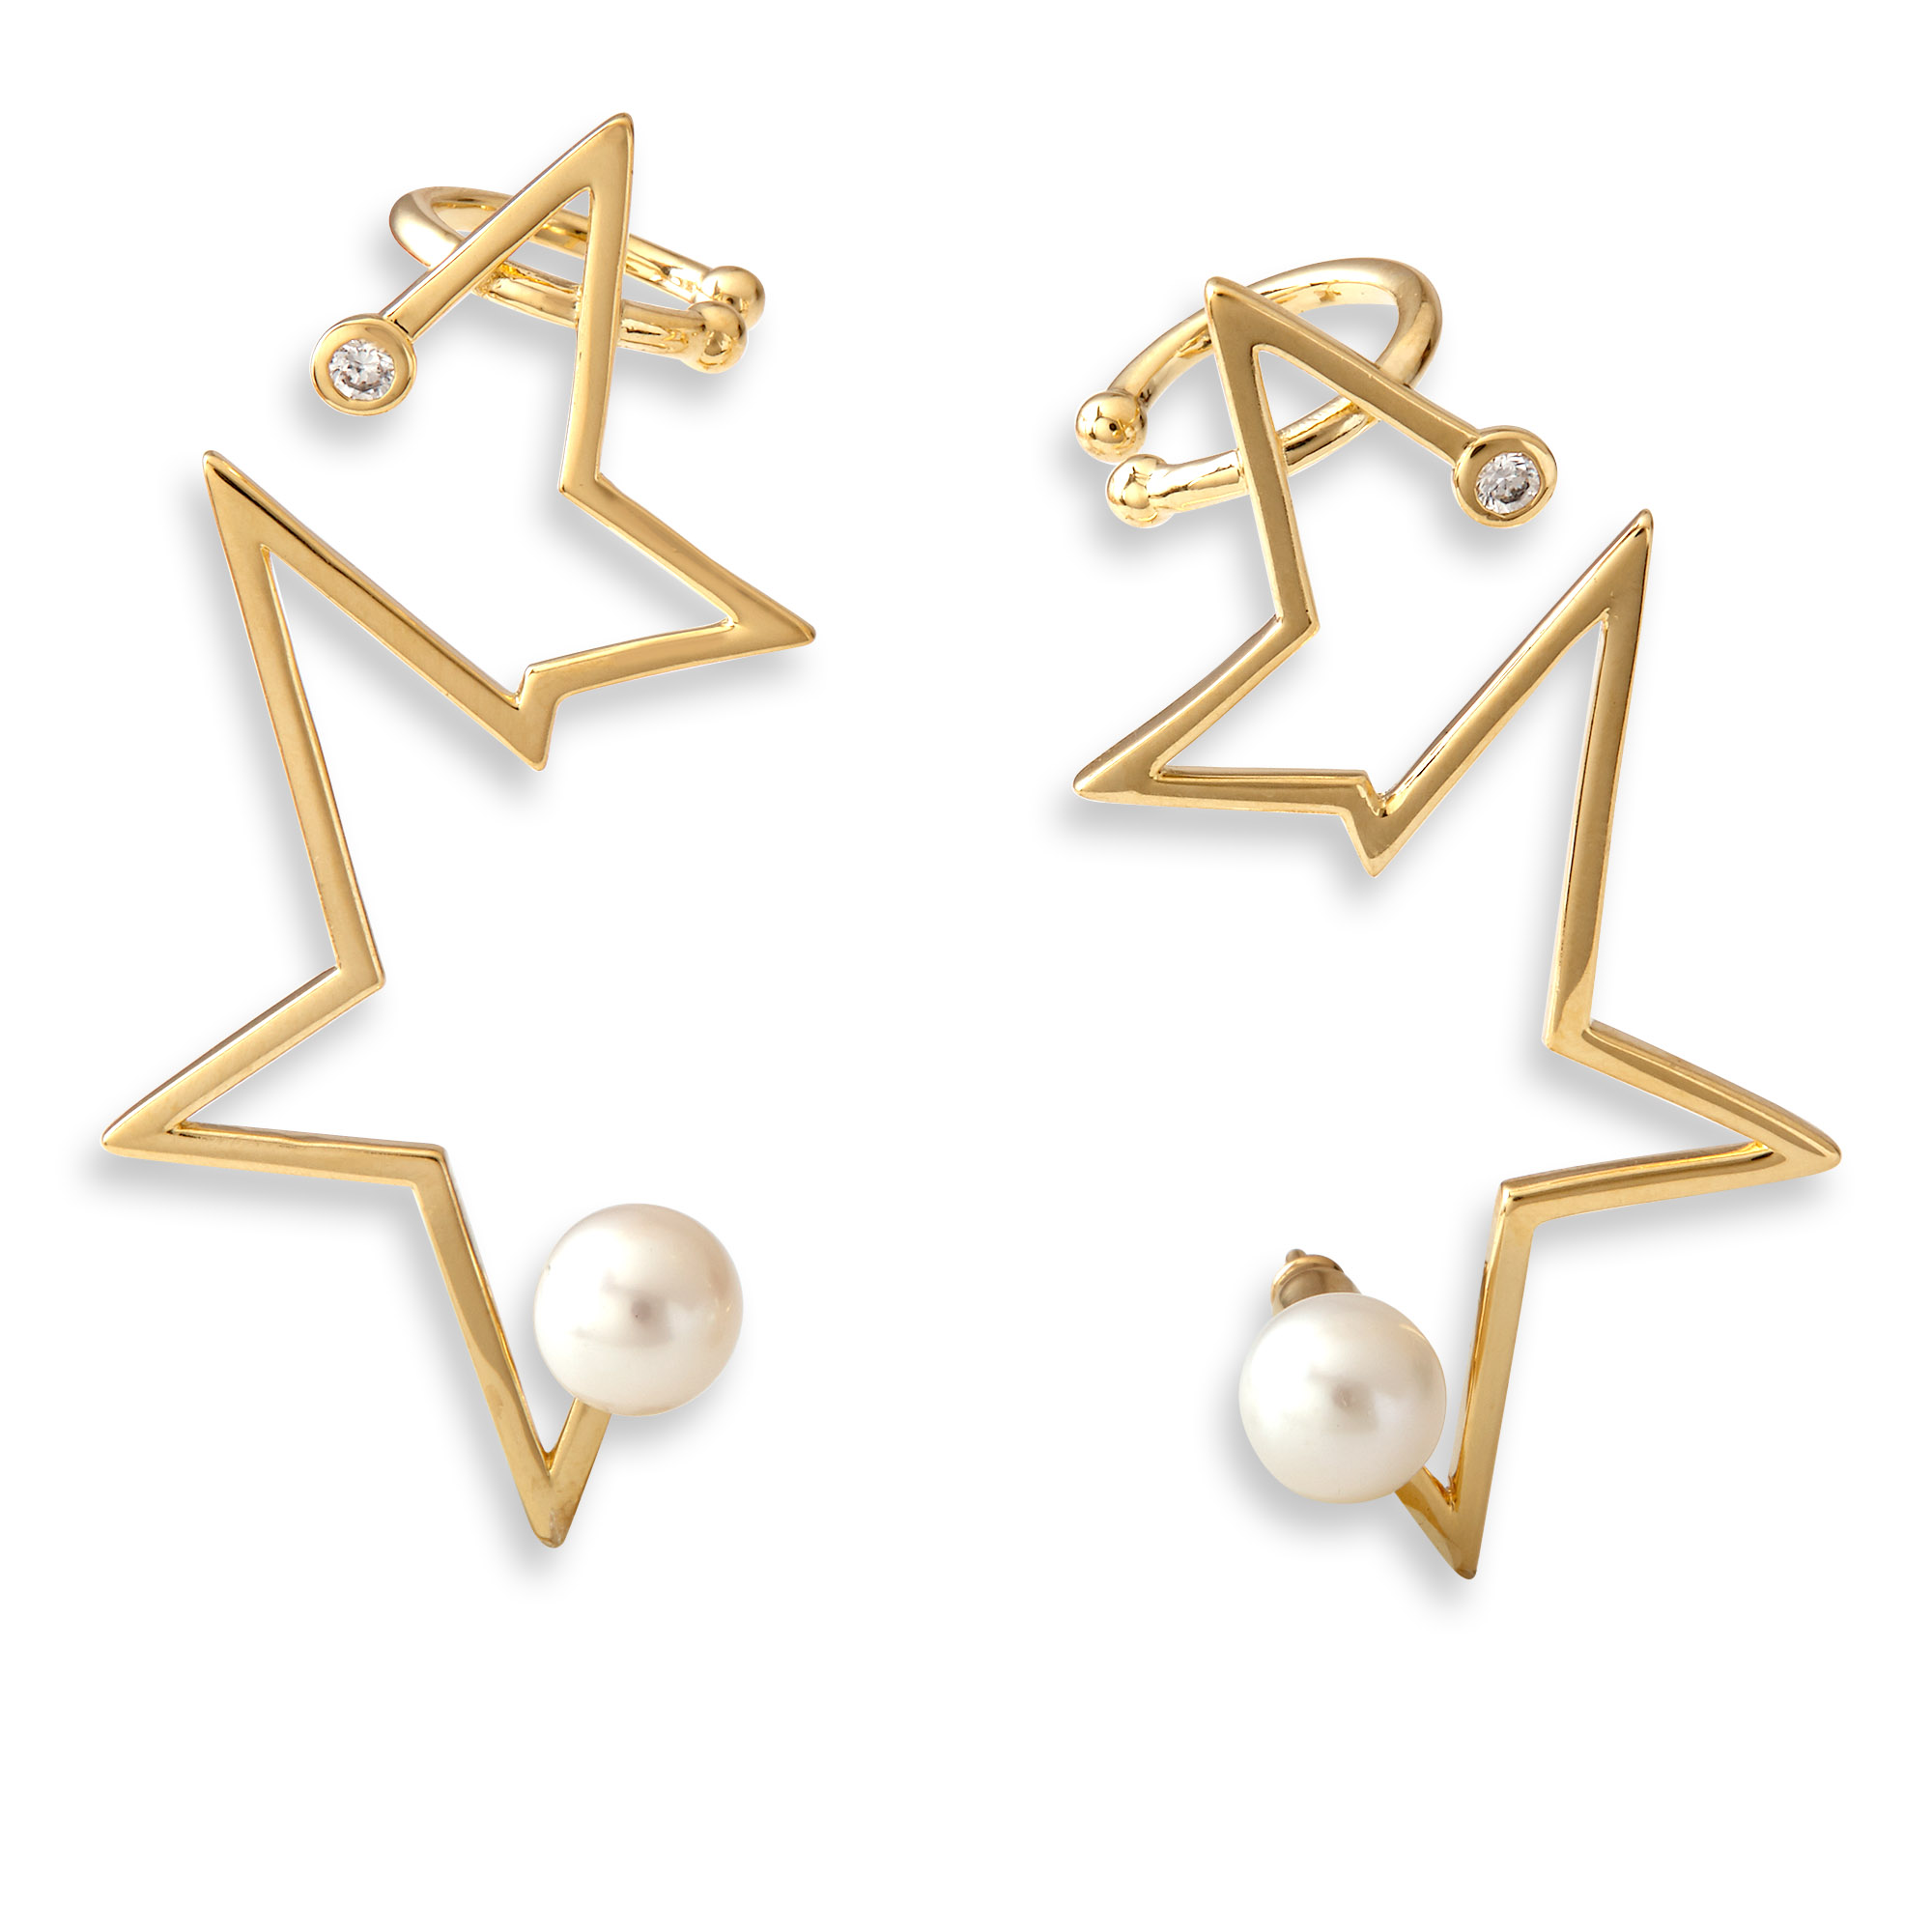 GP_Earrings_009.jpg